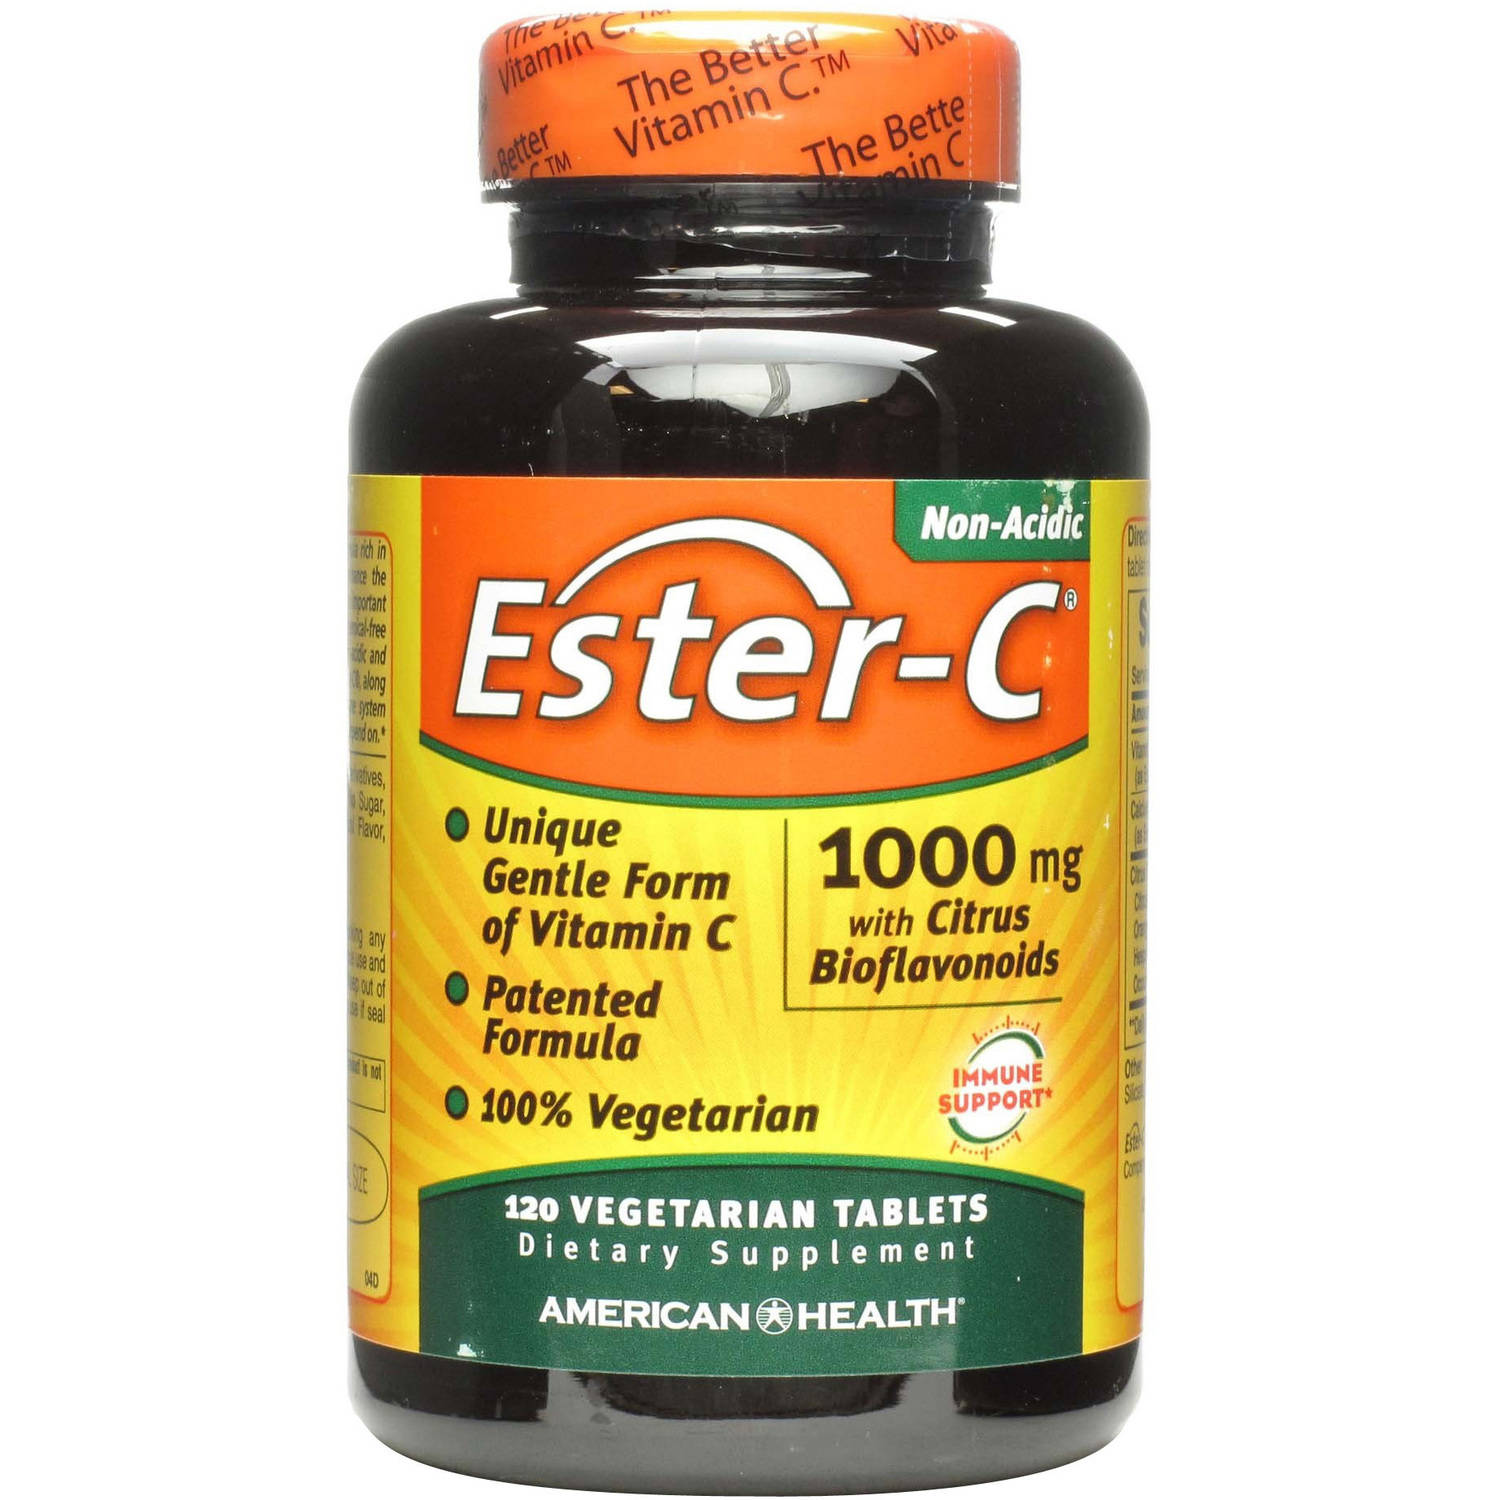 American Health Ester-C Dietary Supplement Vegetarian Tablets, 1000mg with Citrus Bioflavonolds, 120 CT